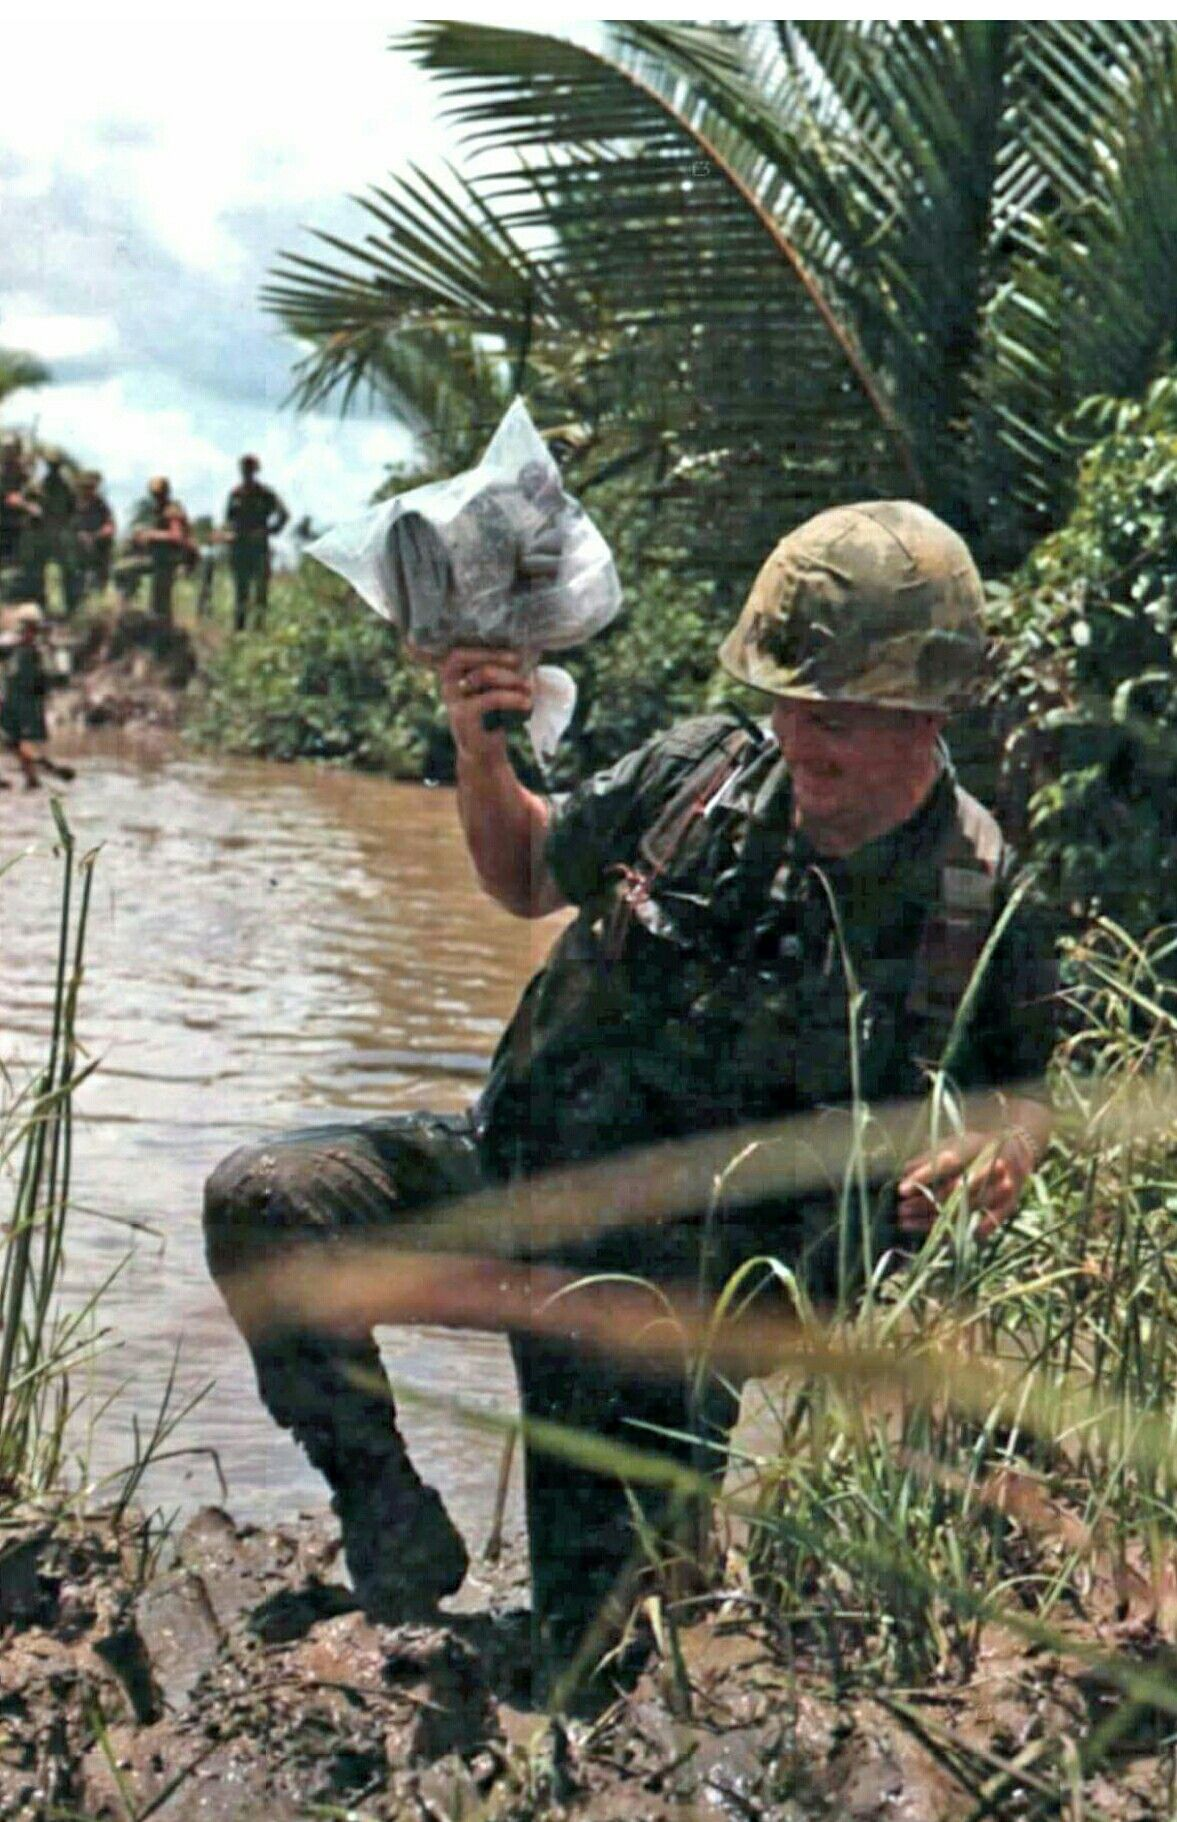 Sgt Thomas O. Wade, DASPO photographer, climbs a muddy bank after crossing a small river while covering Operation Fairfax and Company A, 4th Bn, 12th Inf, 199th Inf Bde, near Saigon, 7 May 67. His camera is wrapped in a plastic bag to keep it dry.